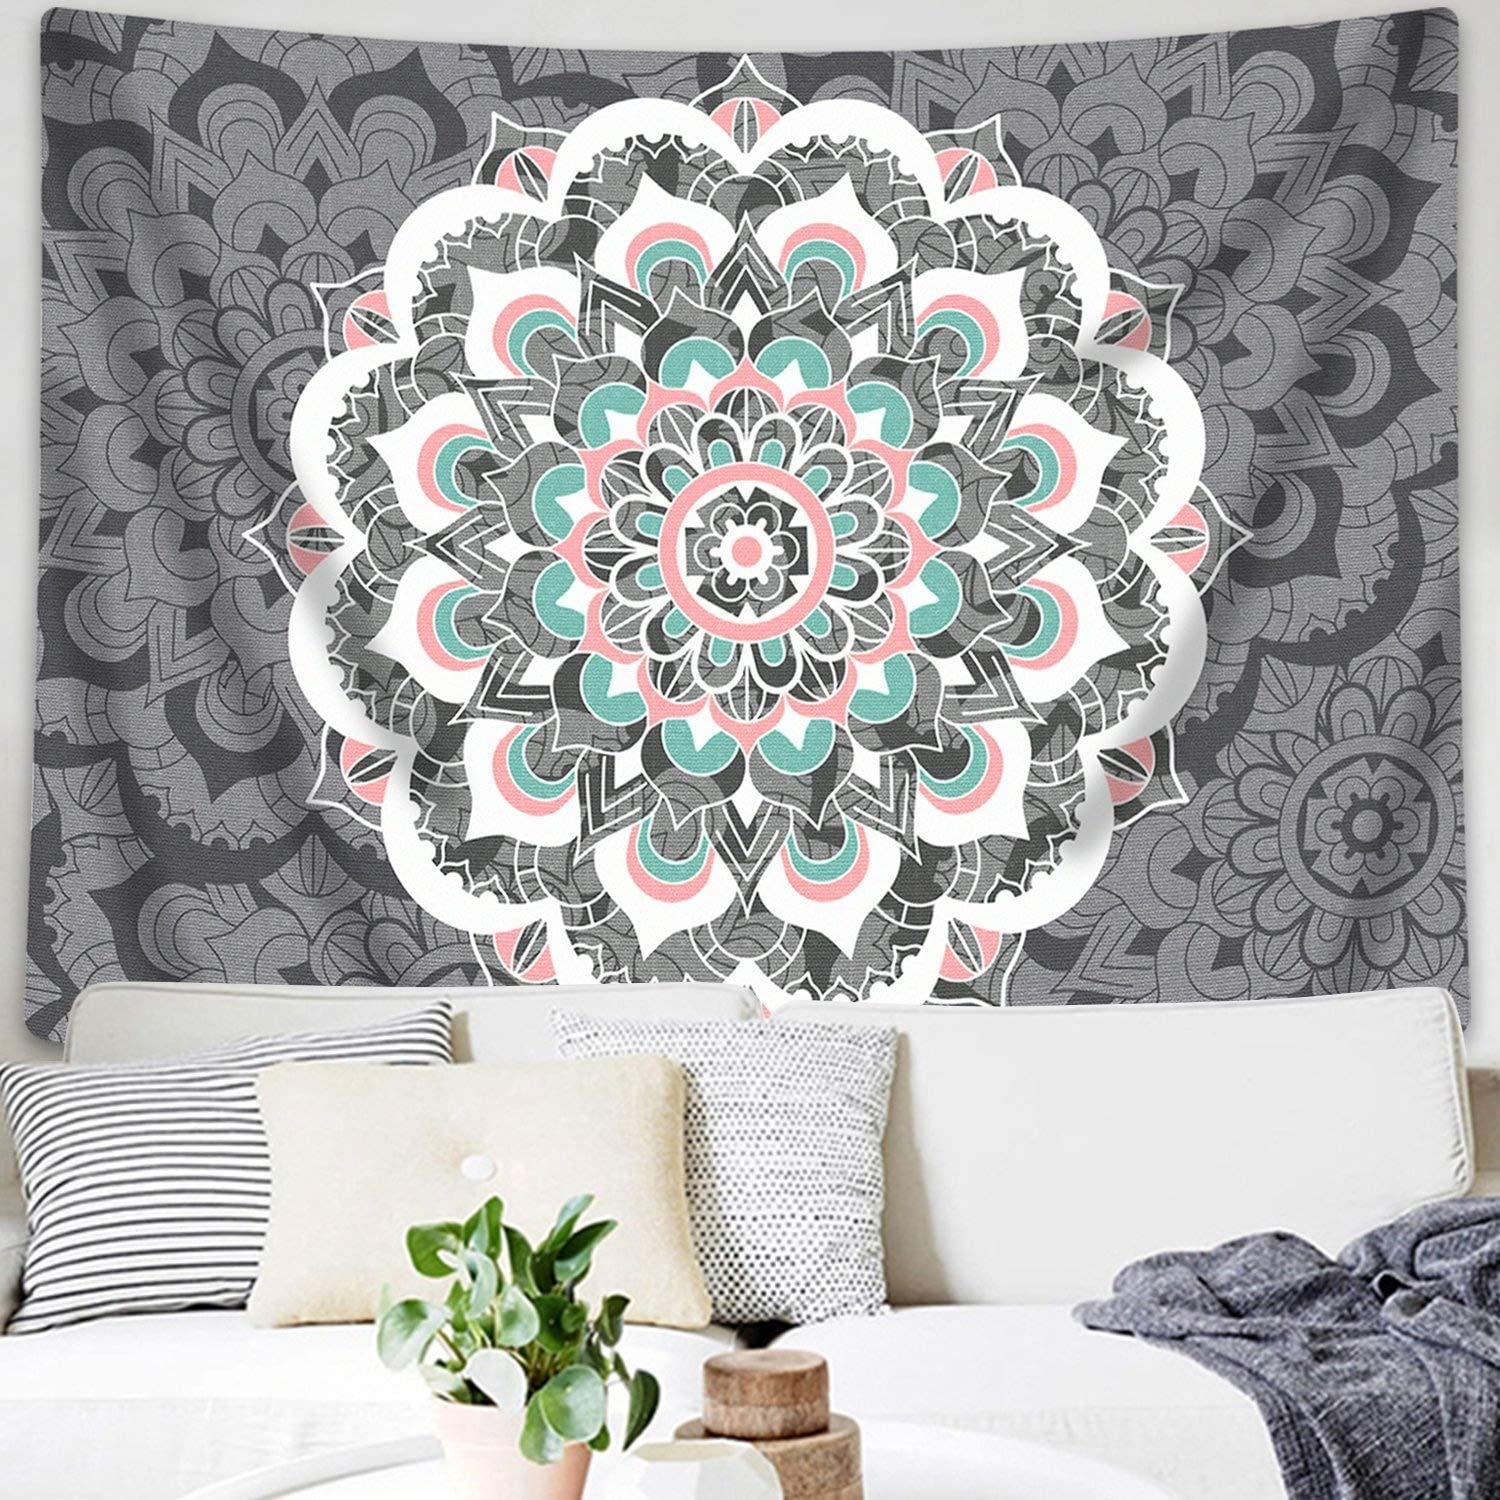 "Sunm Boutique Tapestry Wall Hanging Indian Mandala Tapestry Bohemian Tapestry Hippie Tapestry Psychedelic Tapestry Wall Decor Dorm Decor(Colorful,51.2""x 59.1"")"